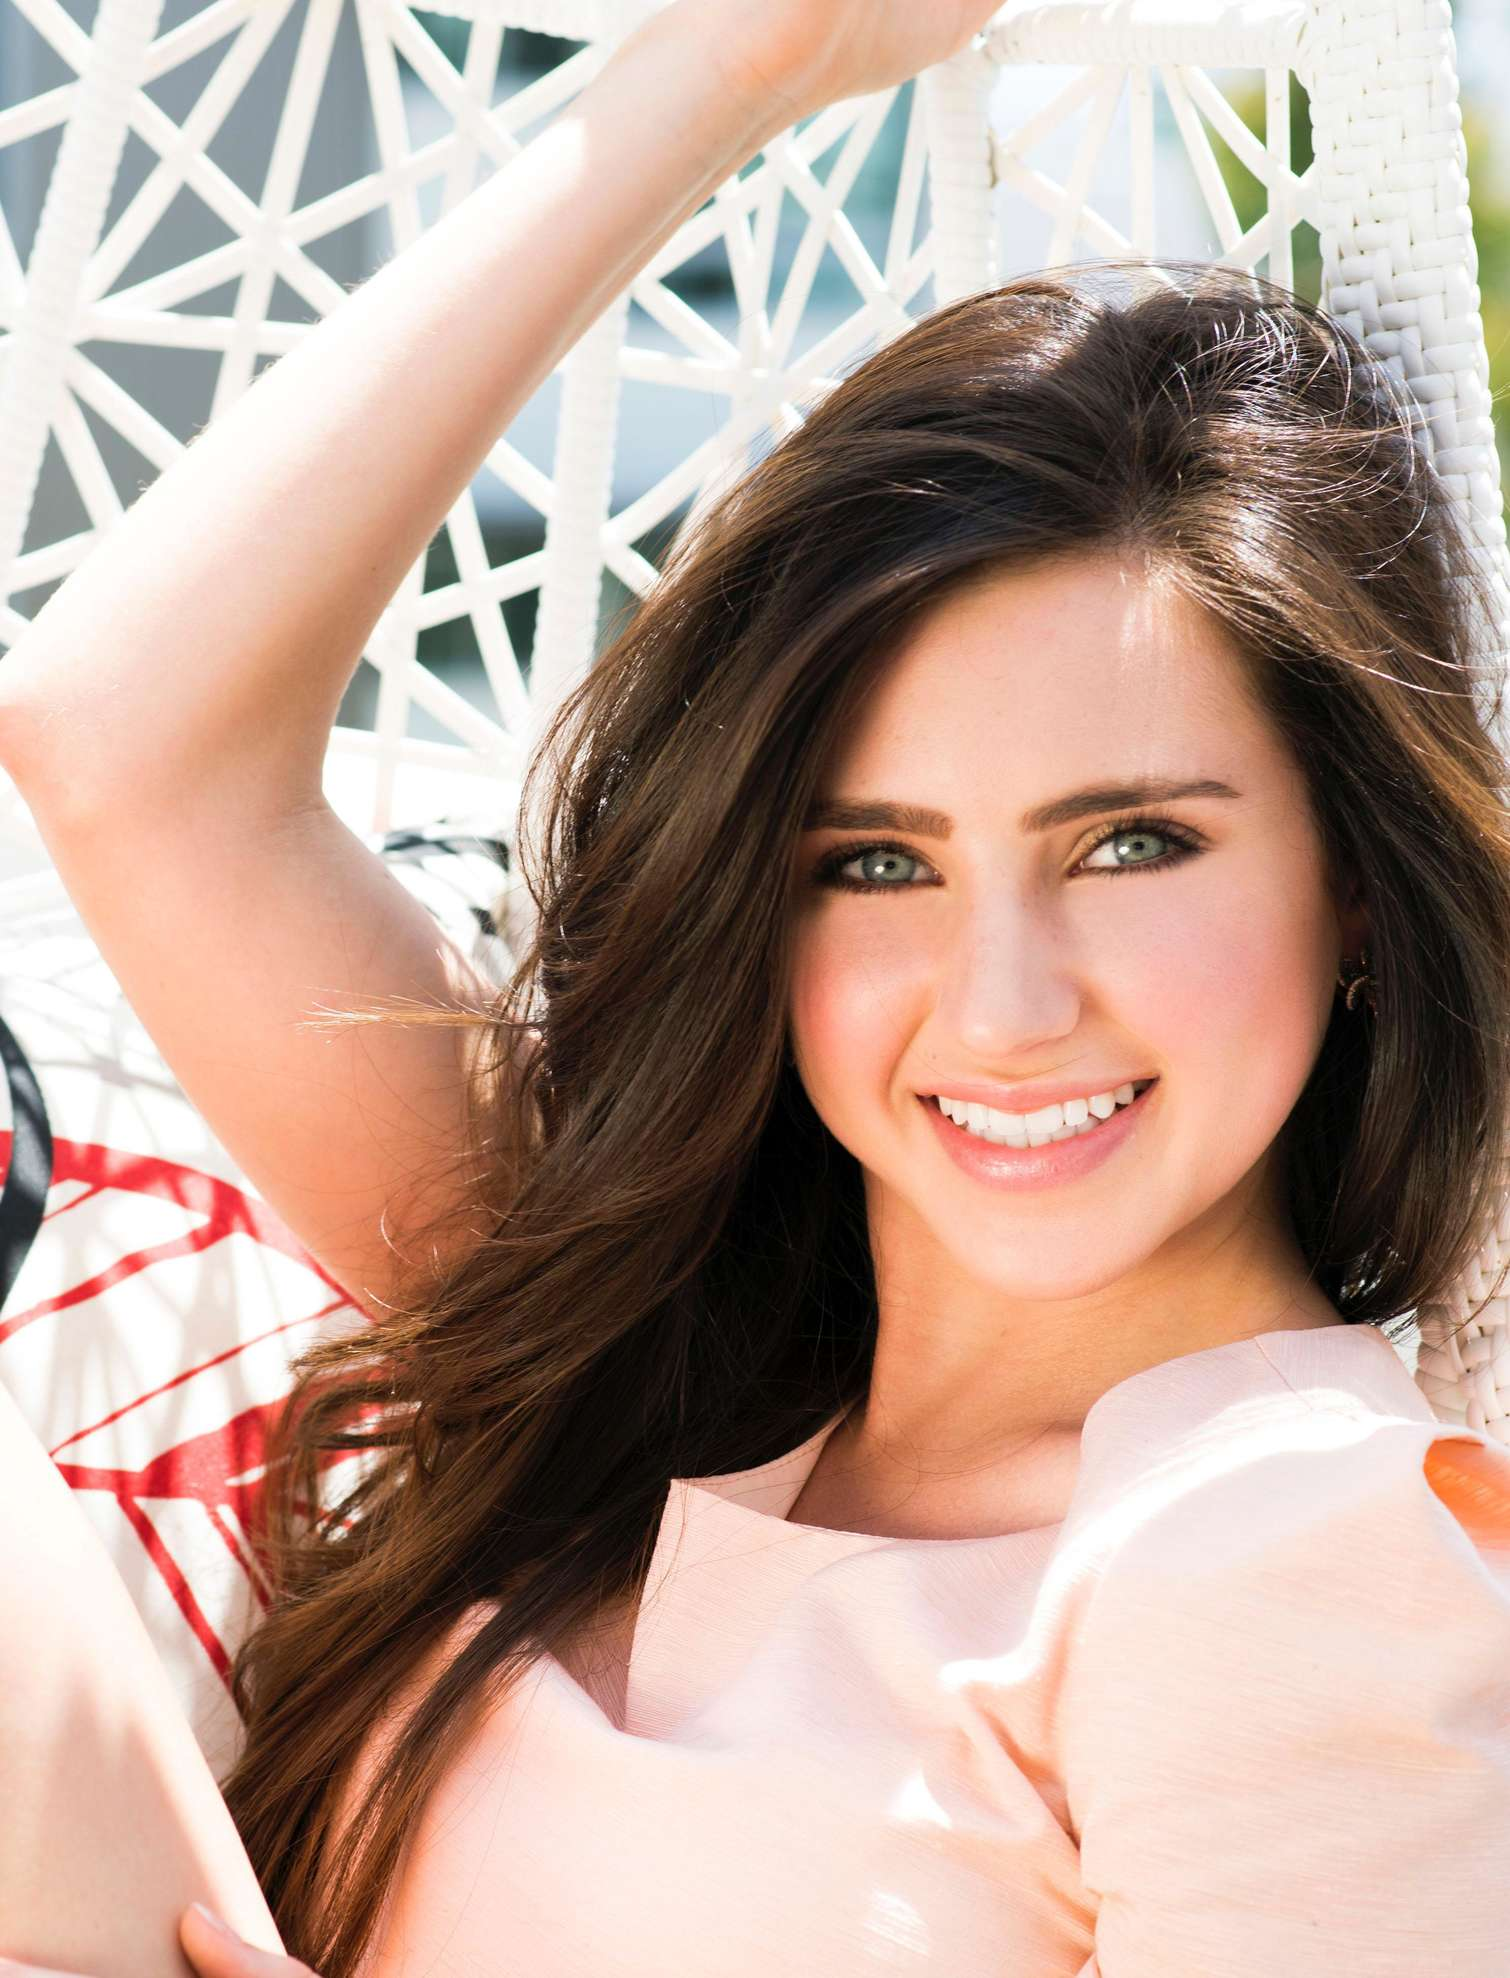 Ryan Newman: Sara Jaye Weiss Photoshoot in LA -04 – GotCeleb